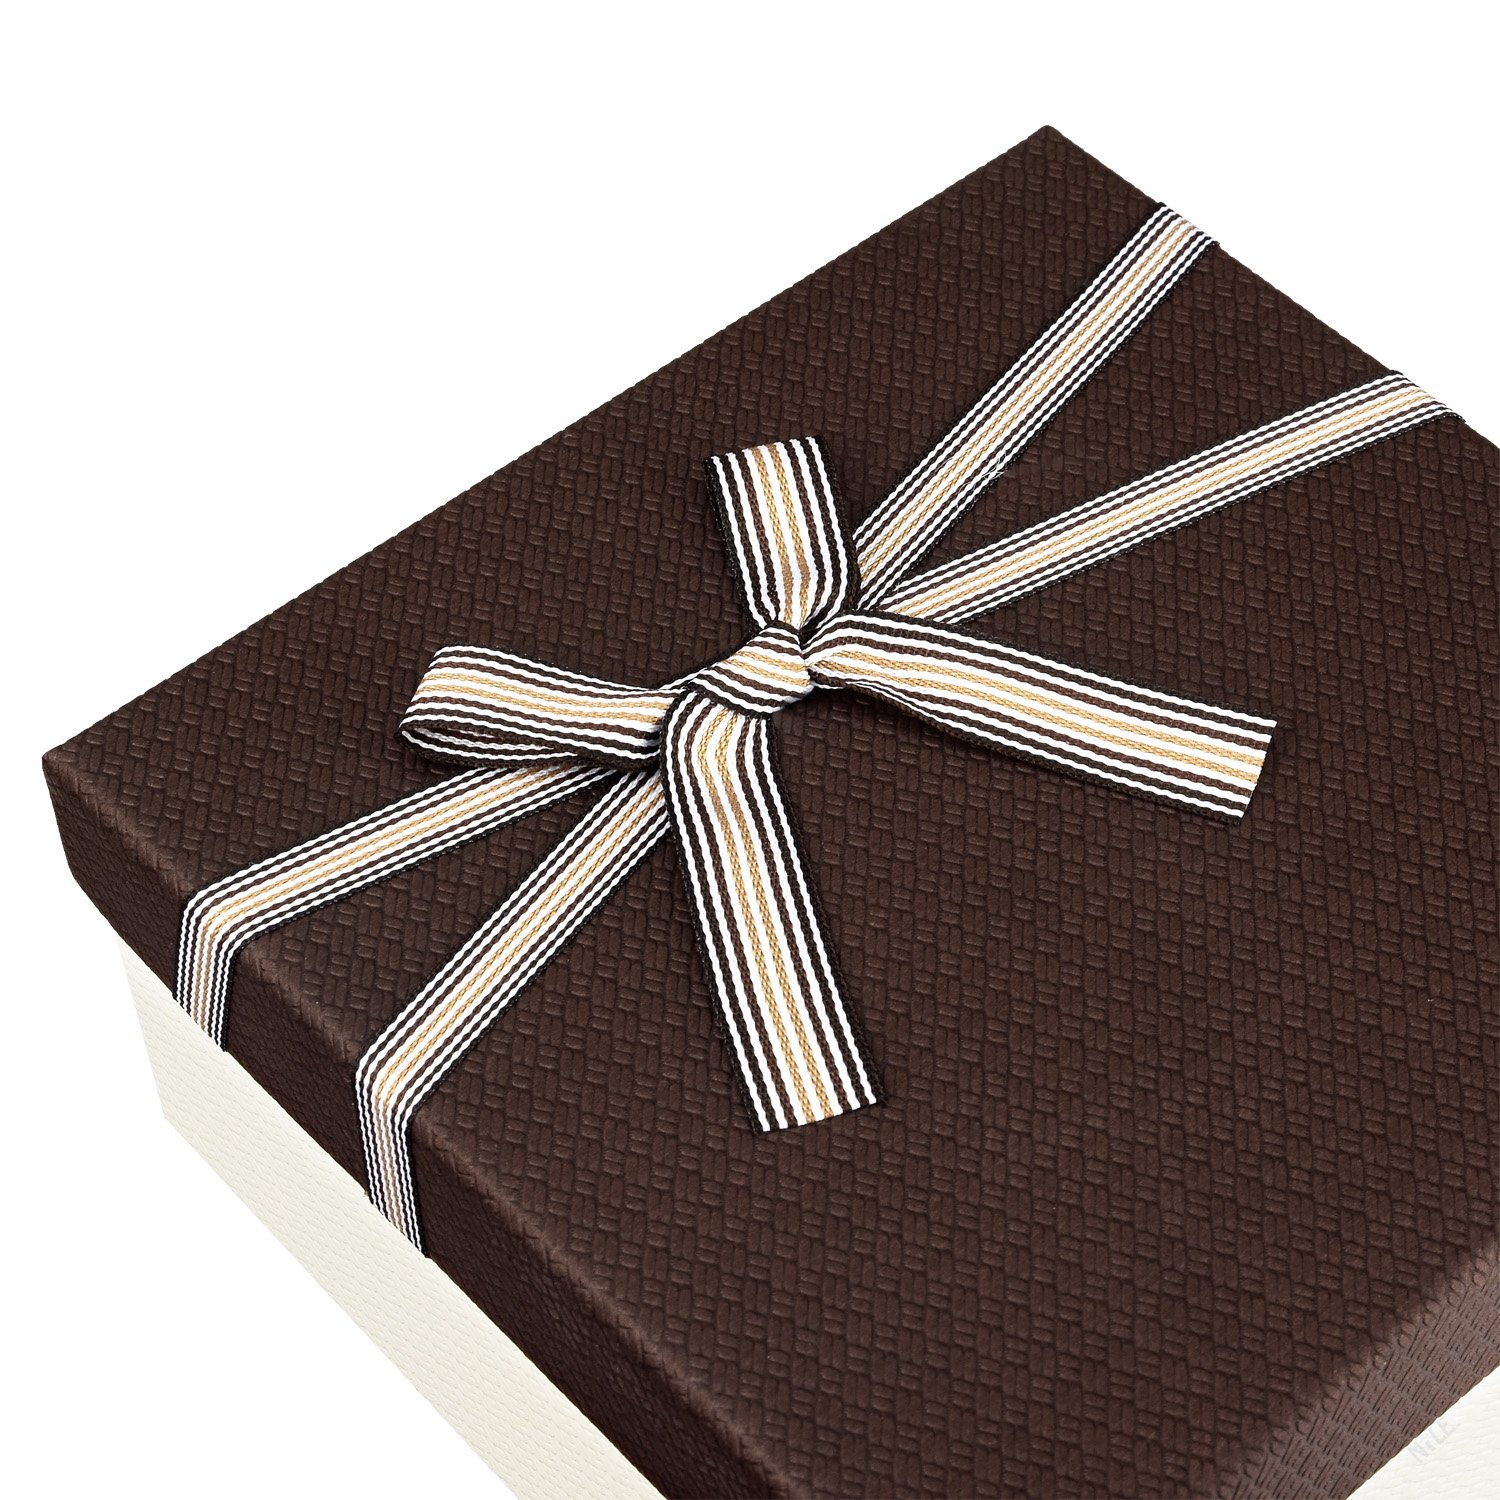 Square Nesting Gift Boxes, A Set of 3,Brown Color with A Bowtie by Ikee Design (Image #7)